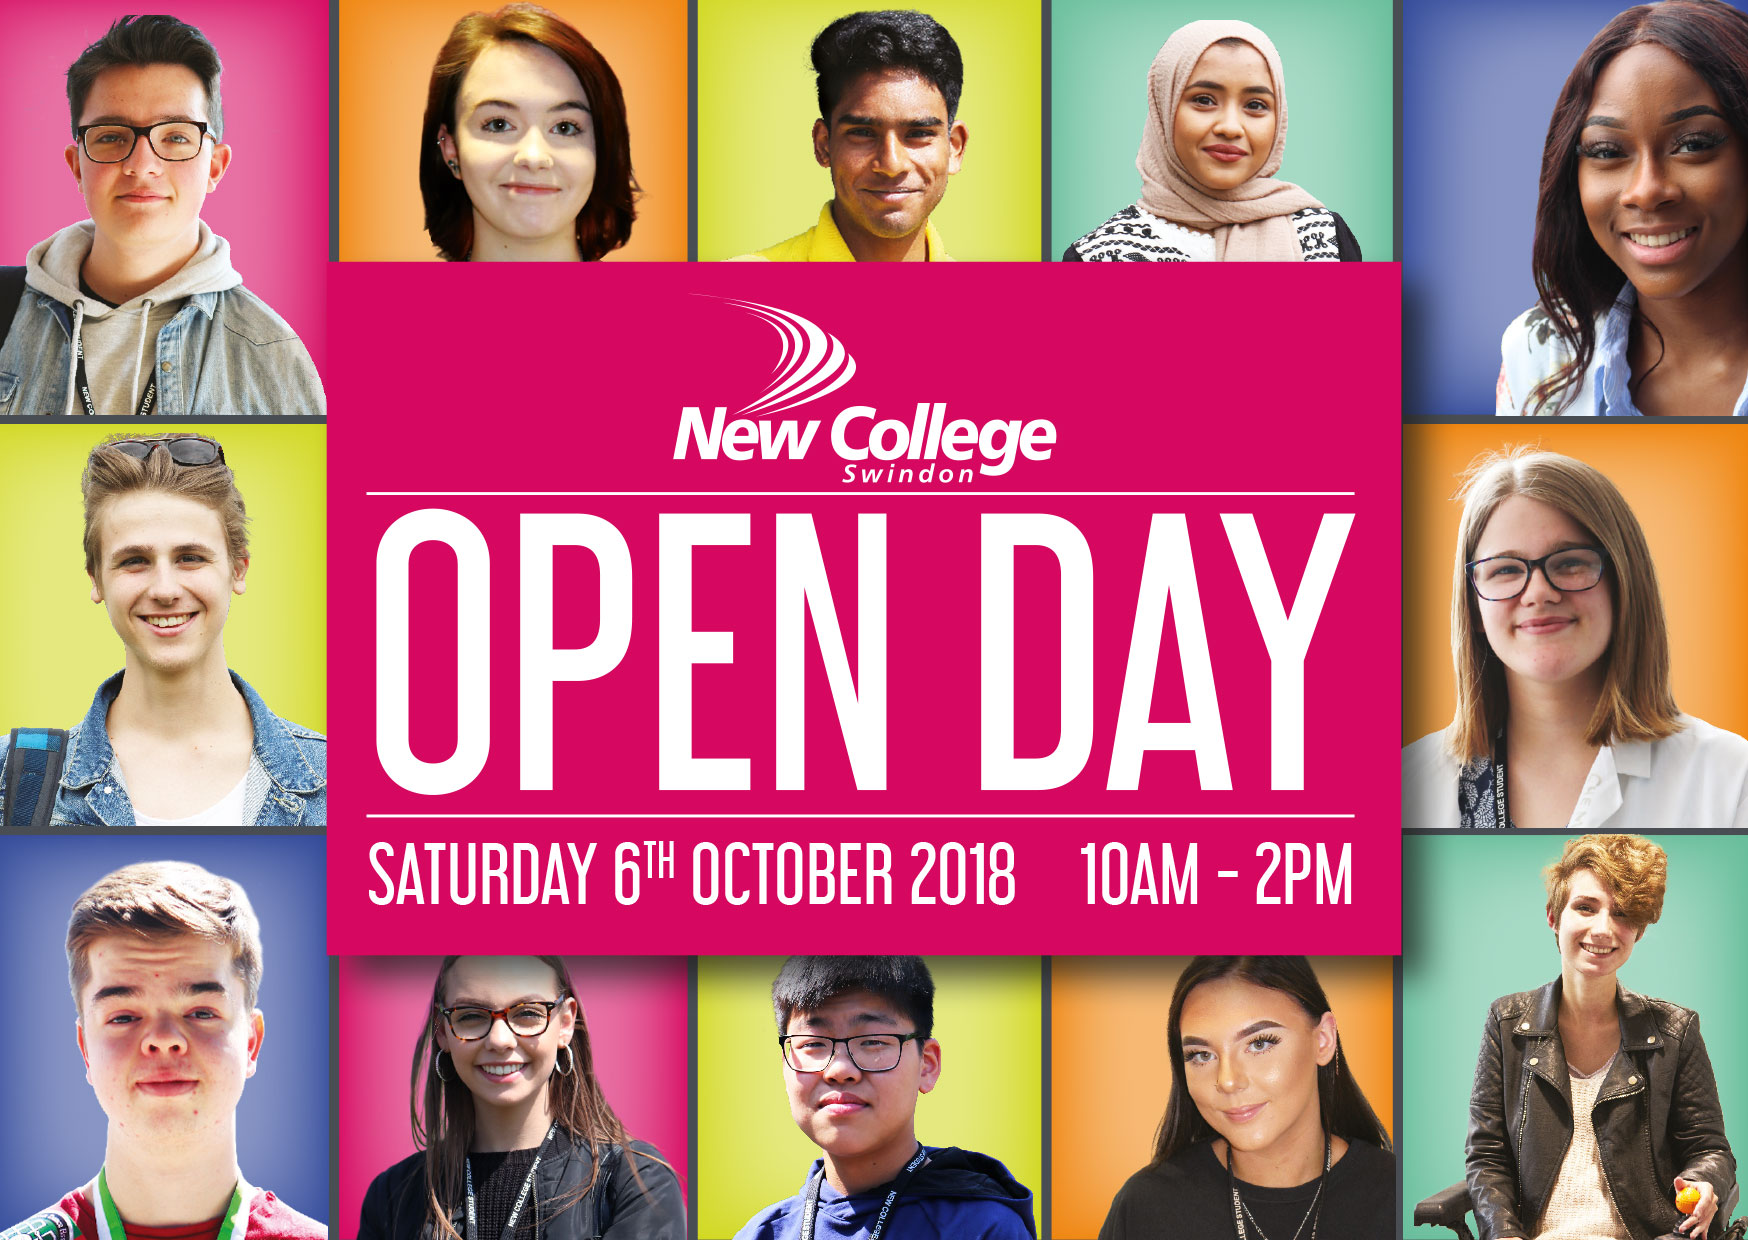 New College opens its doors to prospective students on Saturday 6 October